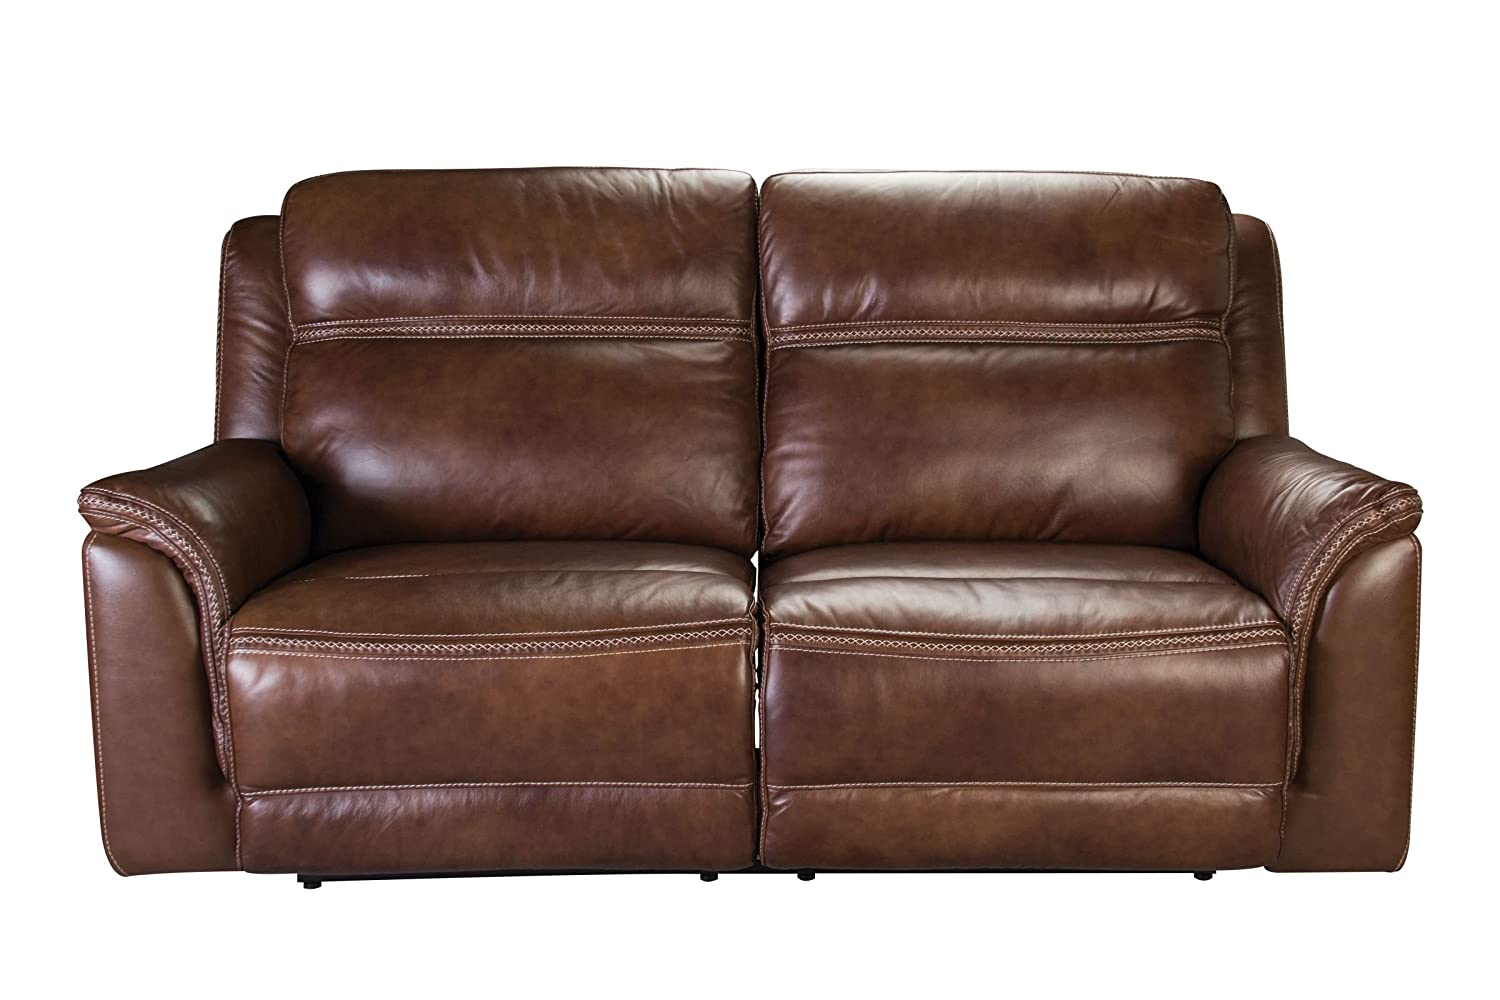 Amazon.com: Fargo Leather Power Reclining Sofa: Kitchen & Dining